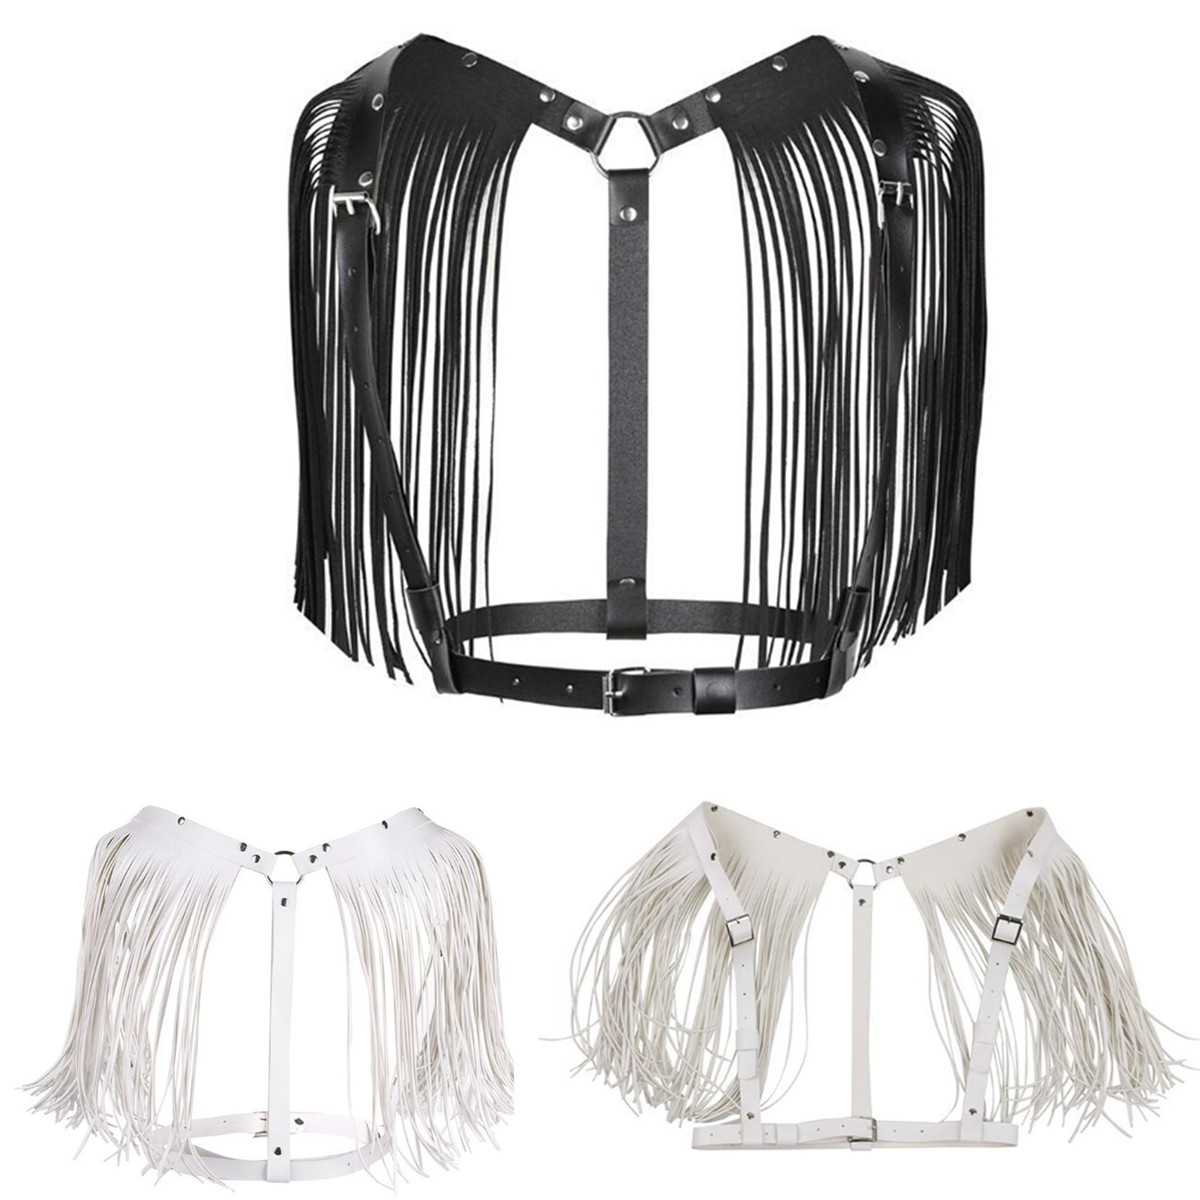 Sexy Women's Leather Punk Body Bra Chest Harness Fringe Skirt Tassel Belt Strap